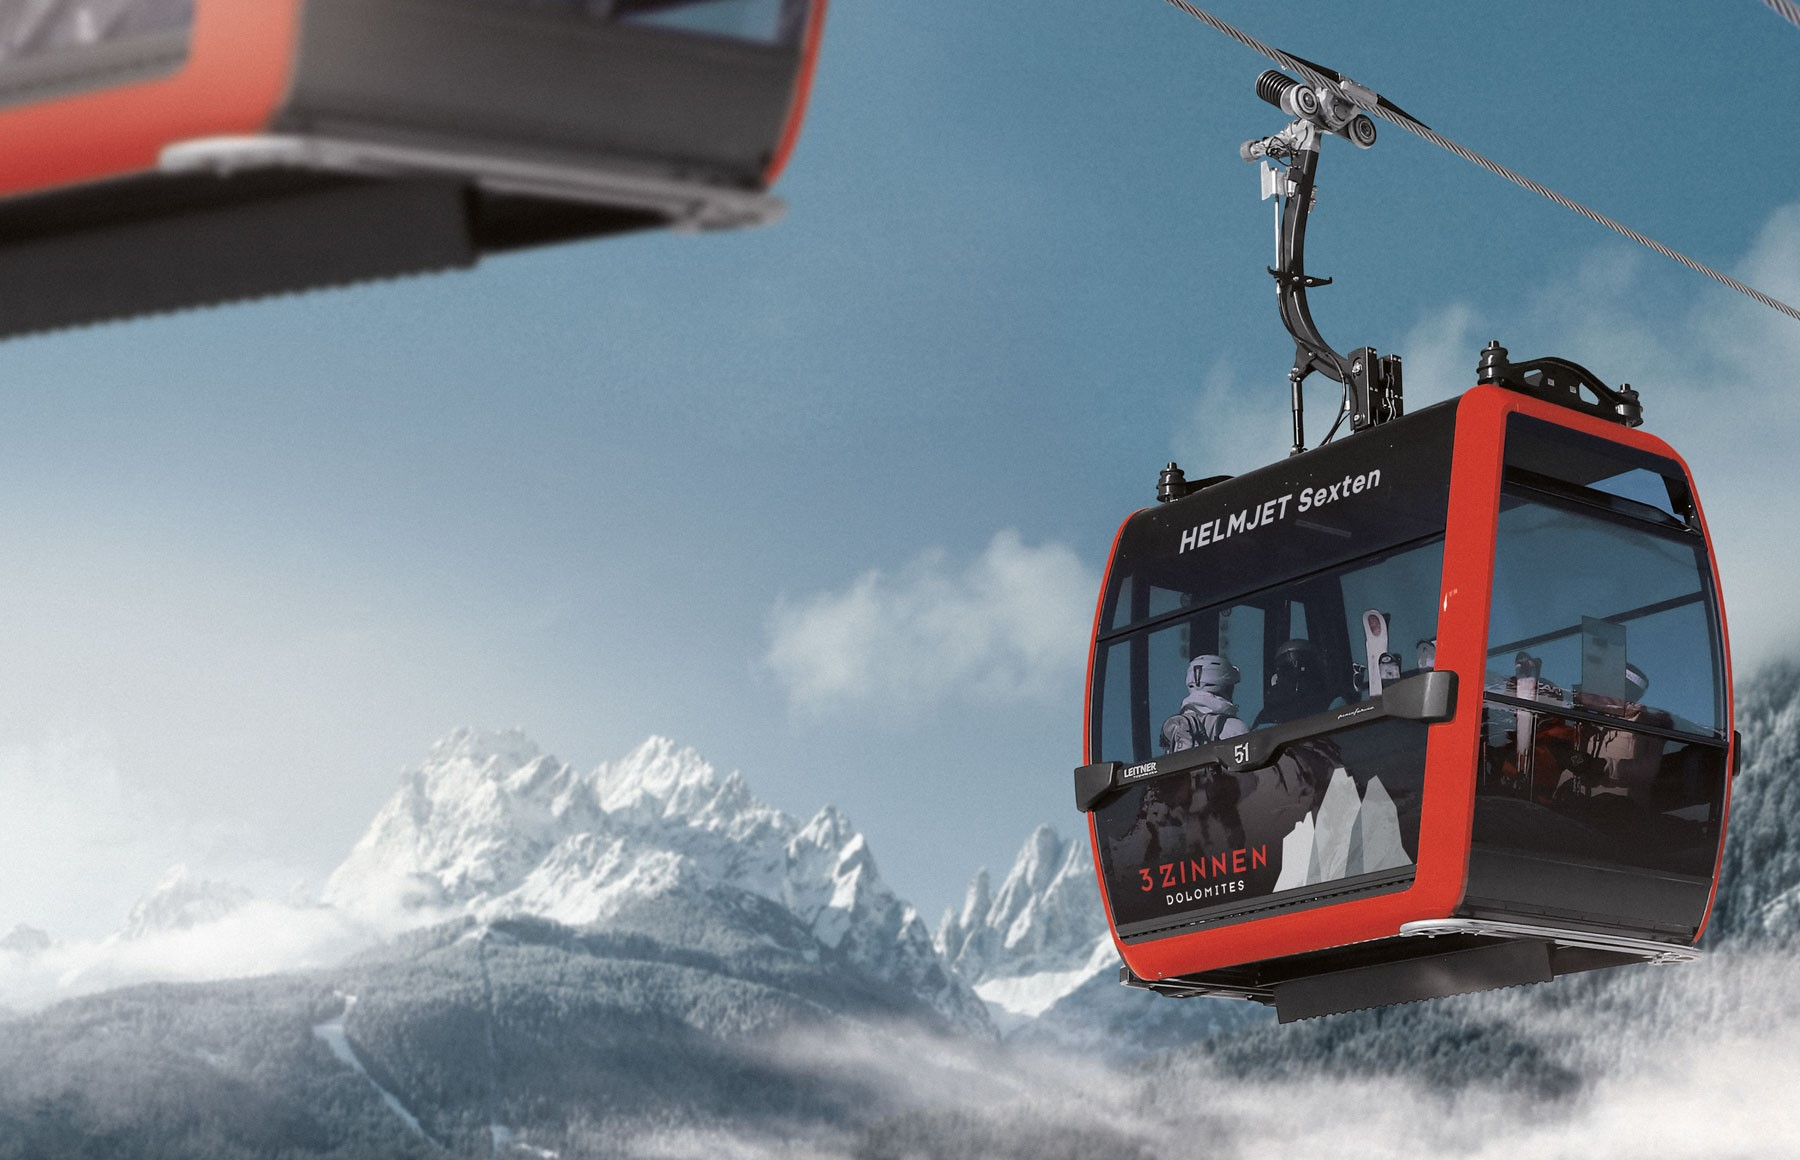 Helmjet Sexten. Drei Zinnen will continue with its plan to install the Helmjet Sexten 10-seater cable car.